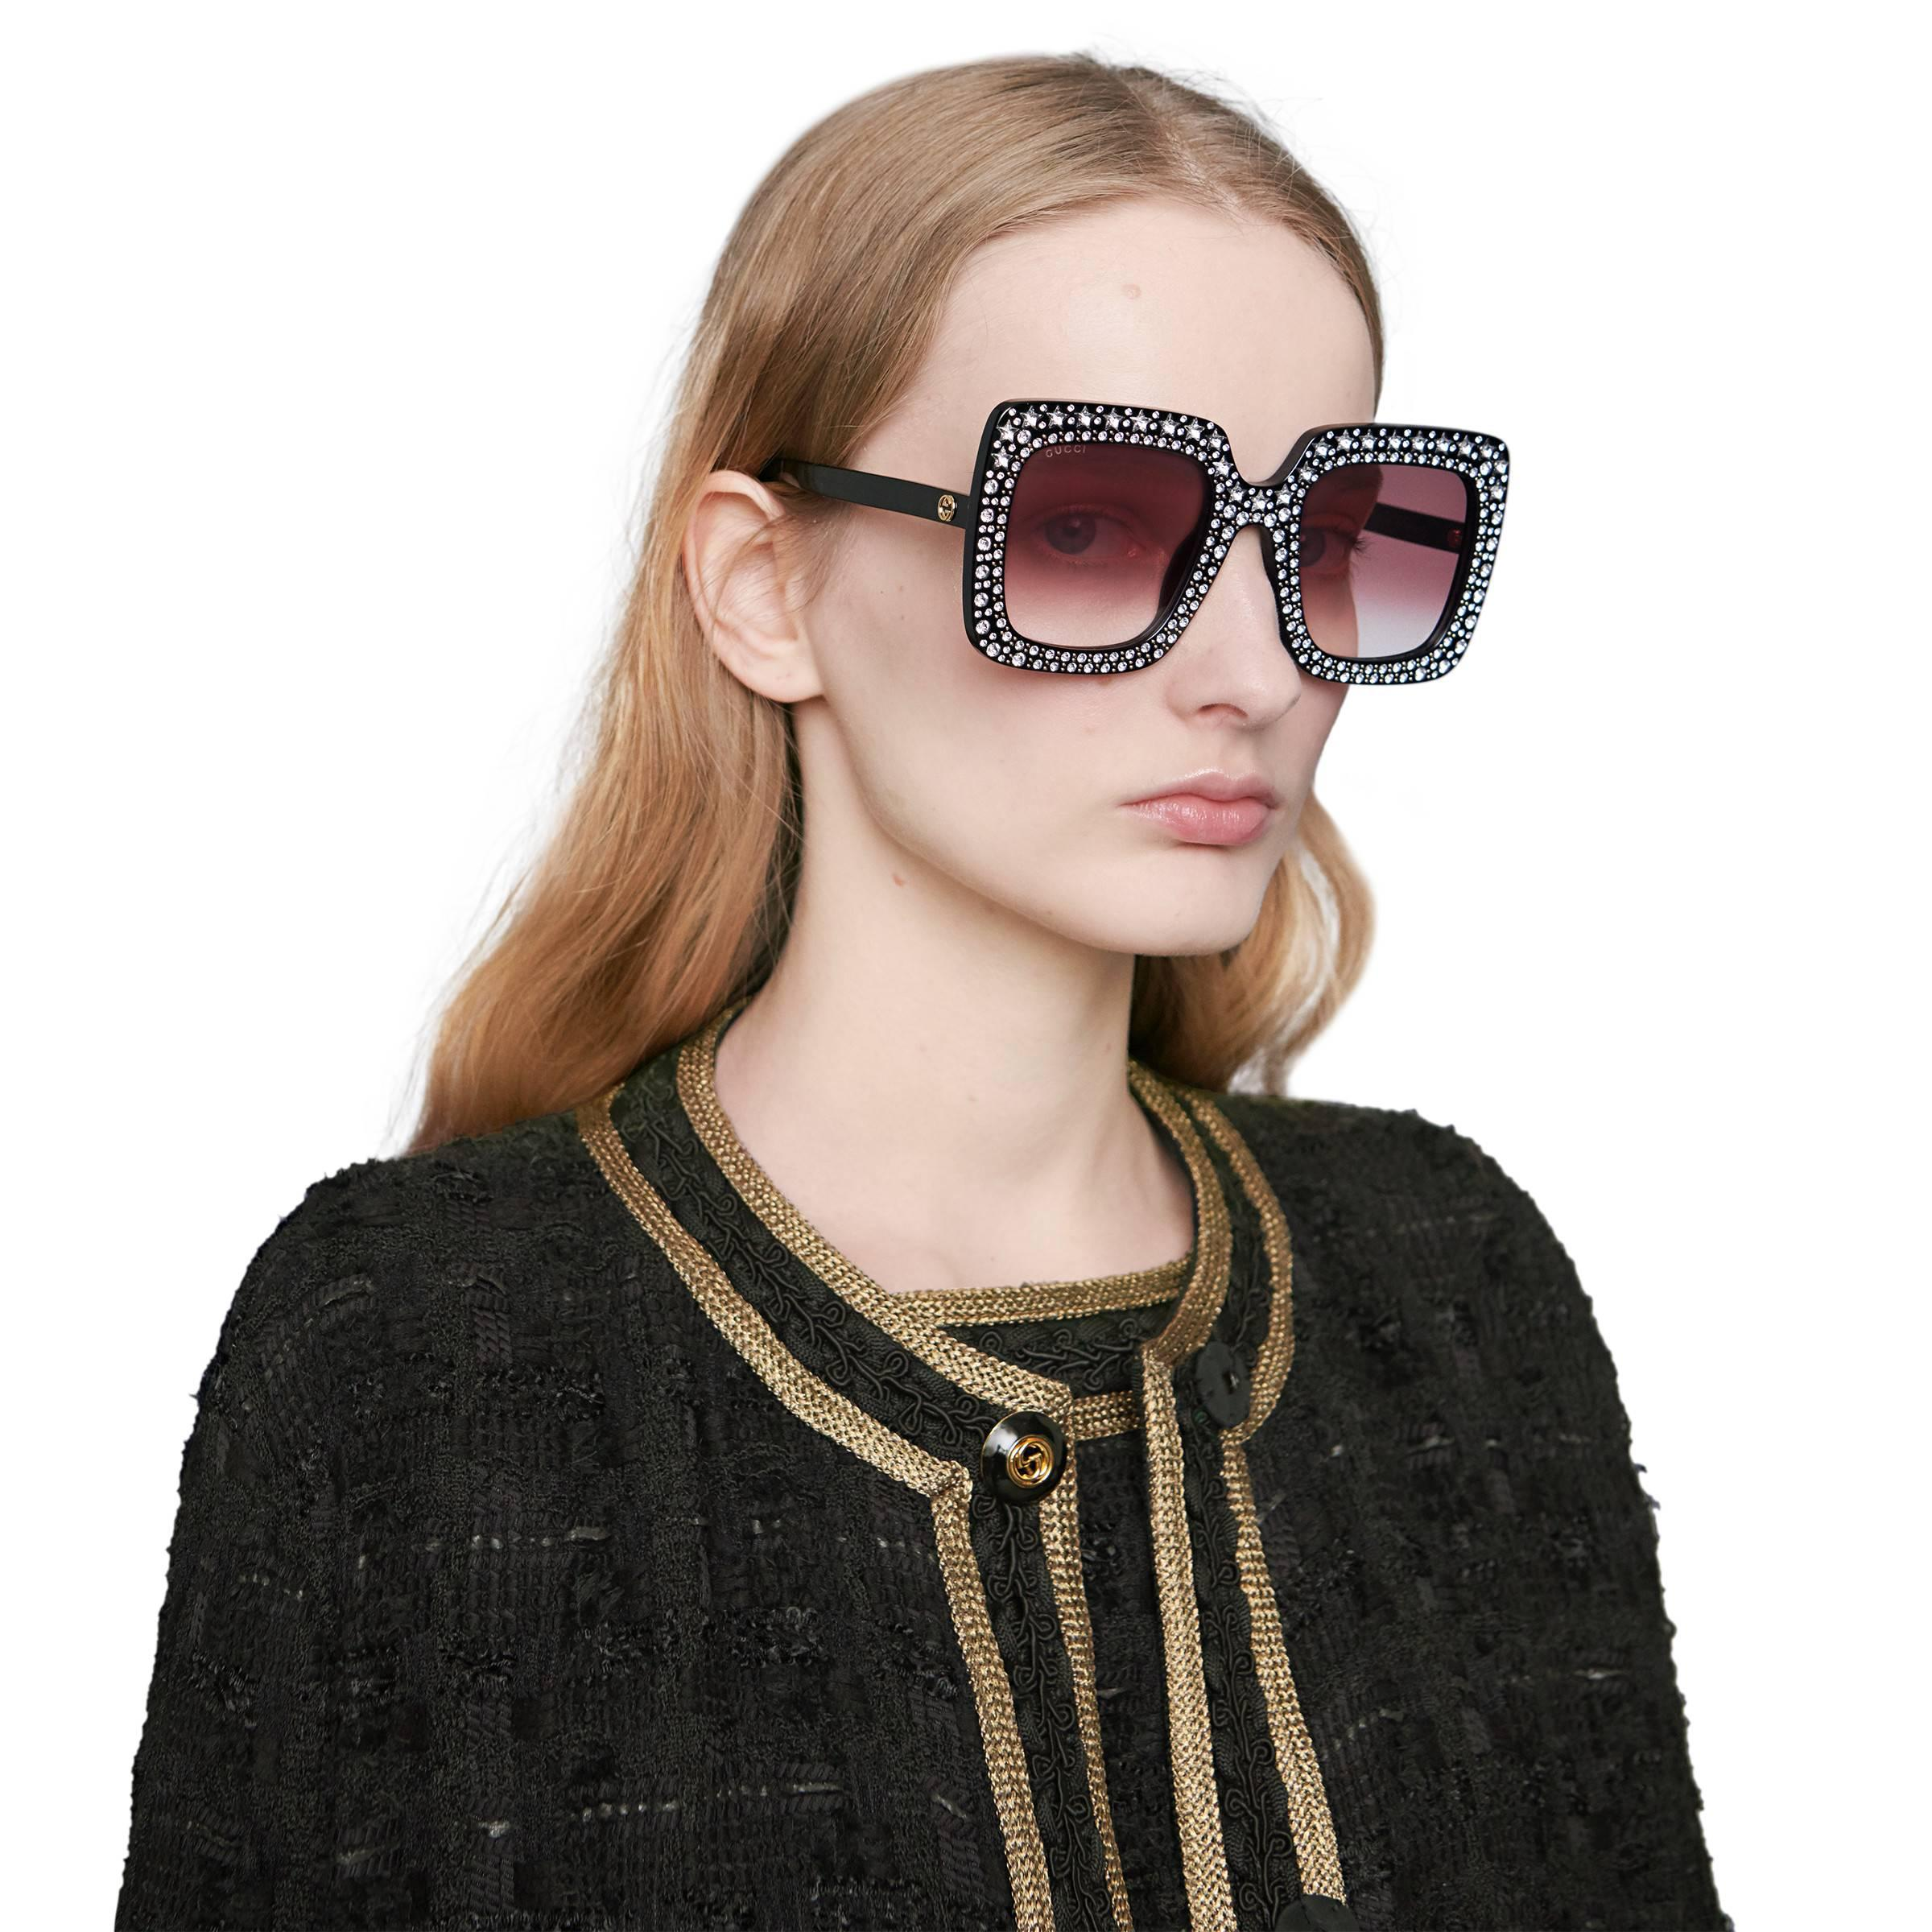 f23a9729d72 Gucci - Black Oversize Square Sunglasses With Crystals - Lyst. View  fullscreen